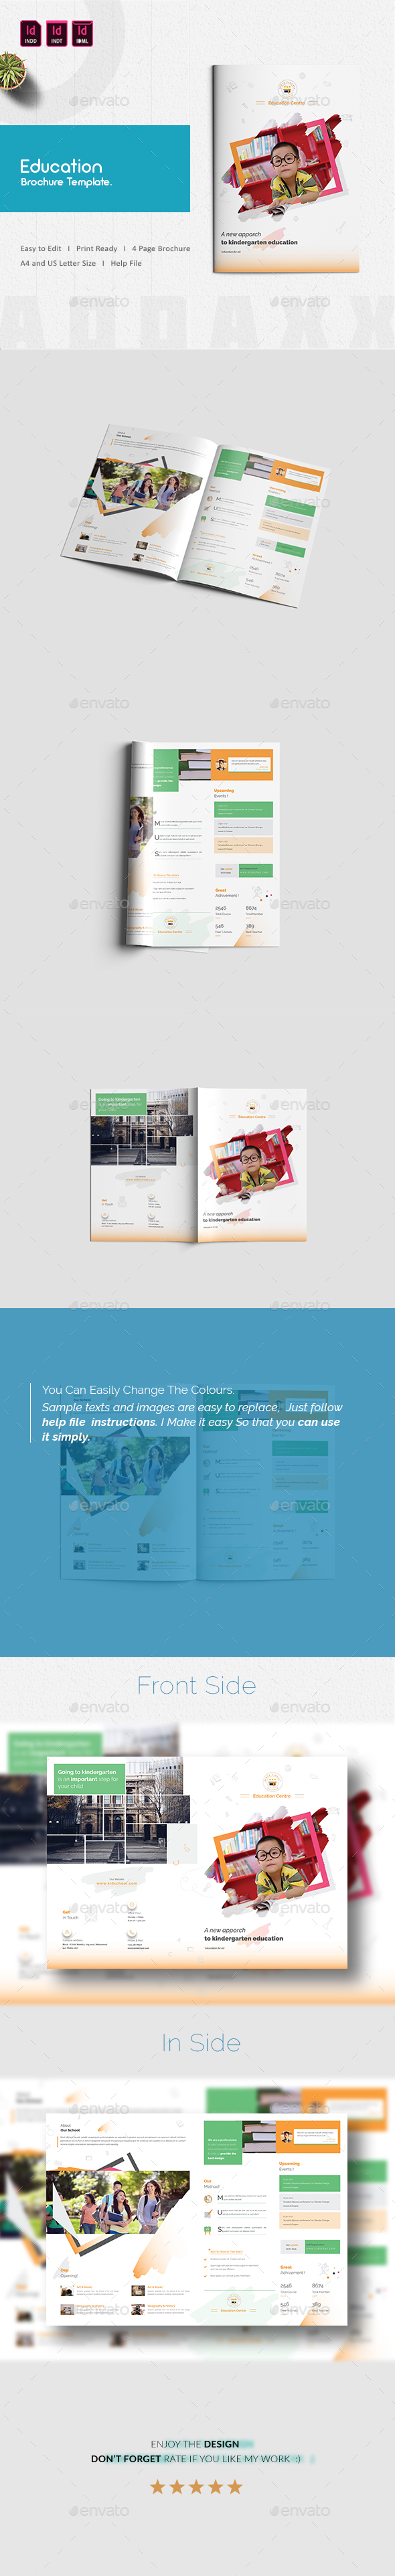 Education Brochure Template - Corporate Brochures